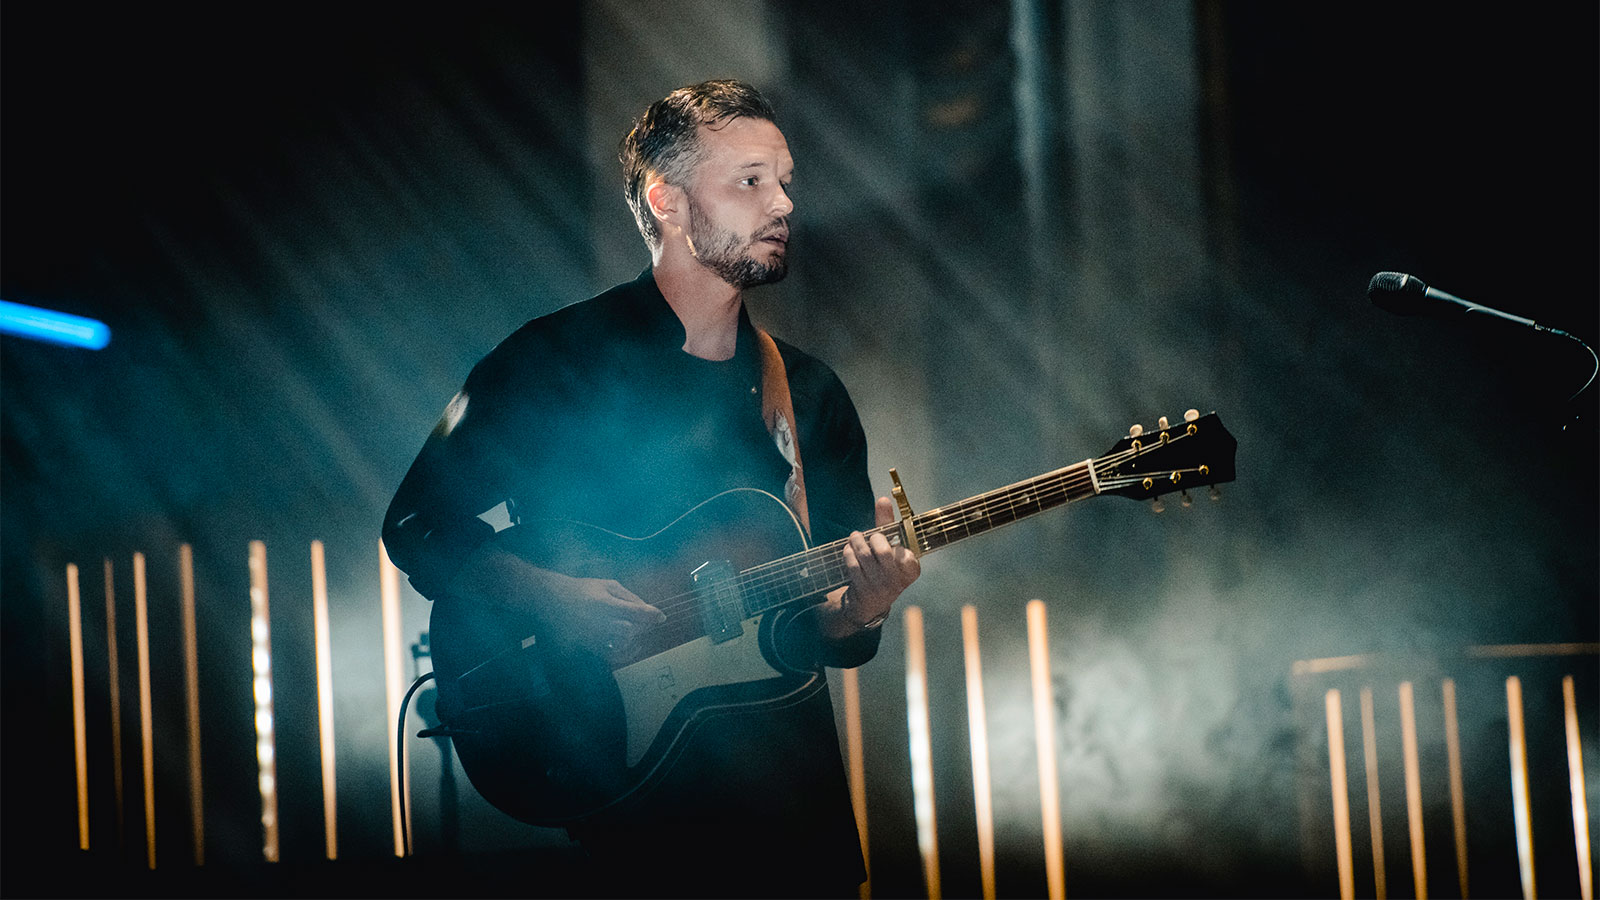 2018 09 27   De Roma   The Tallest Man On Earth   02 Concert   002